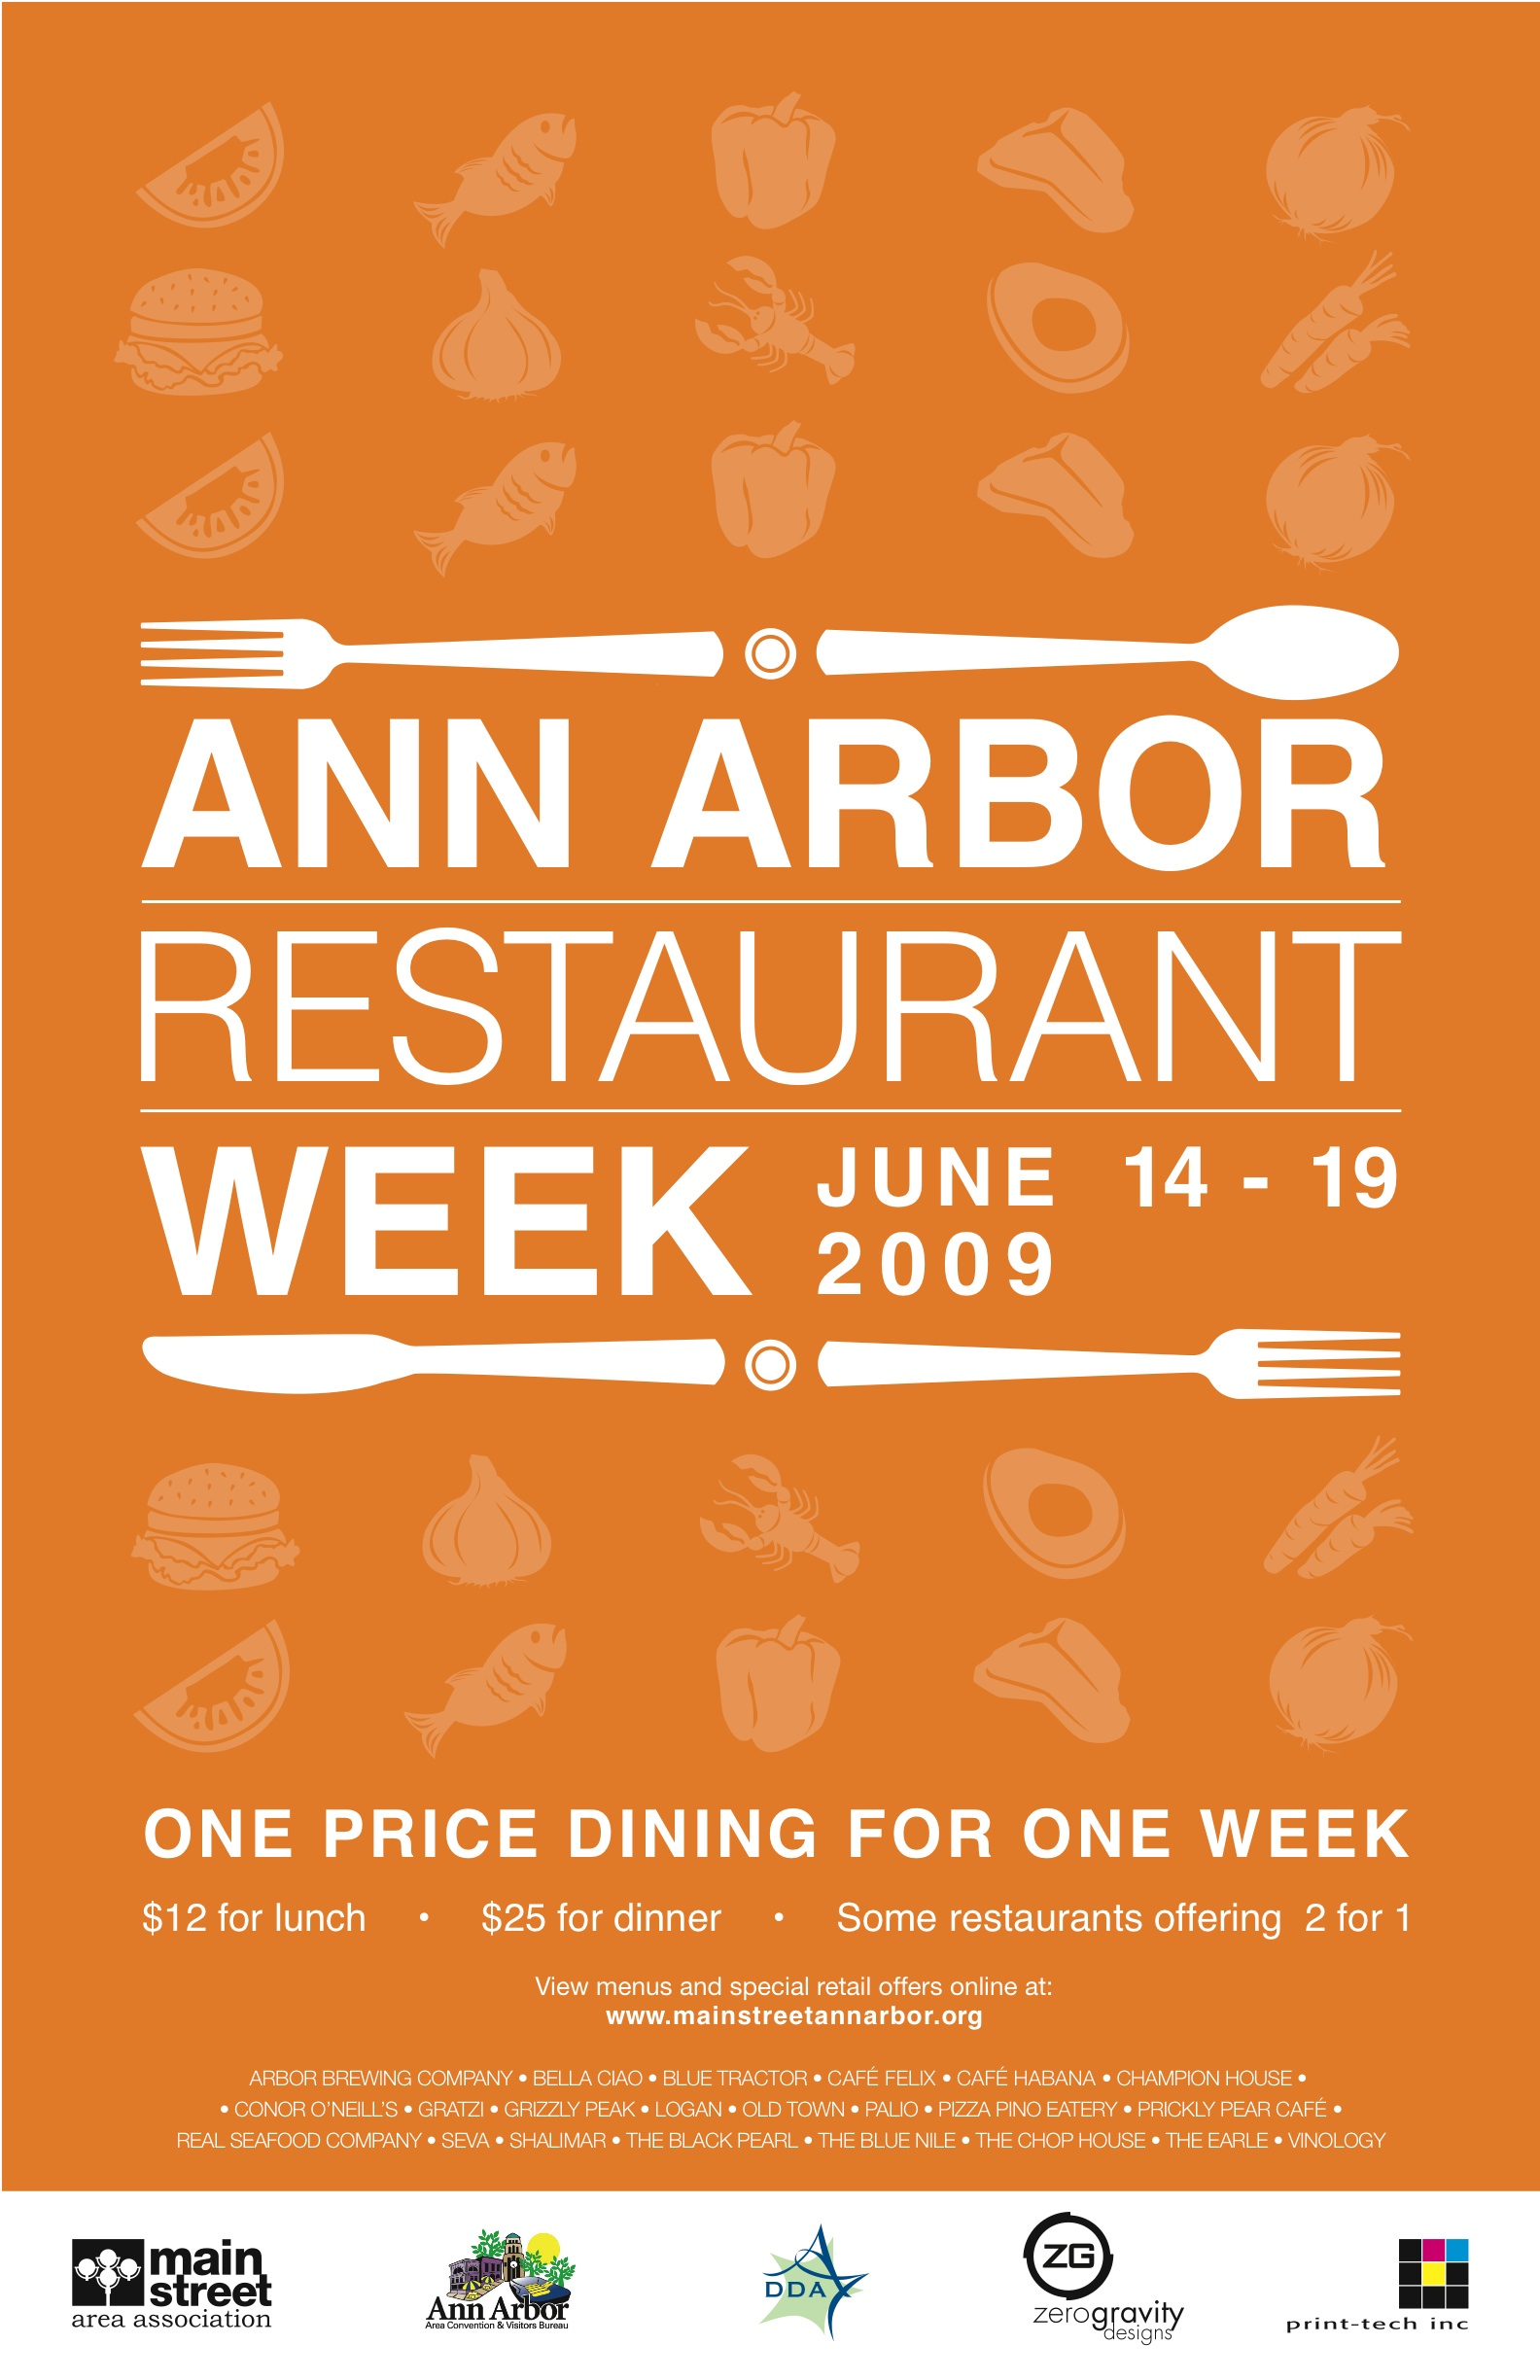 RESTAURANT WEEK : All posts